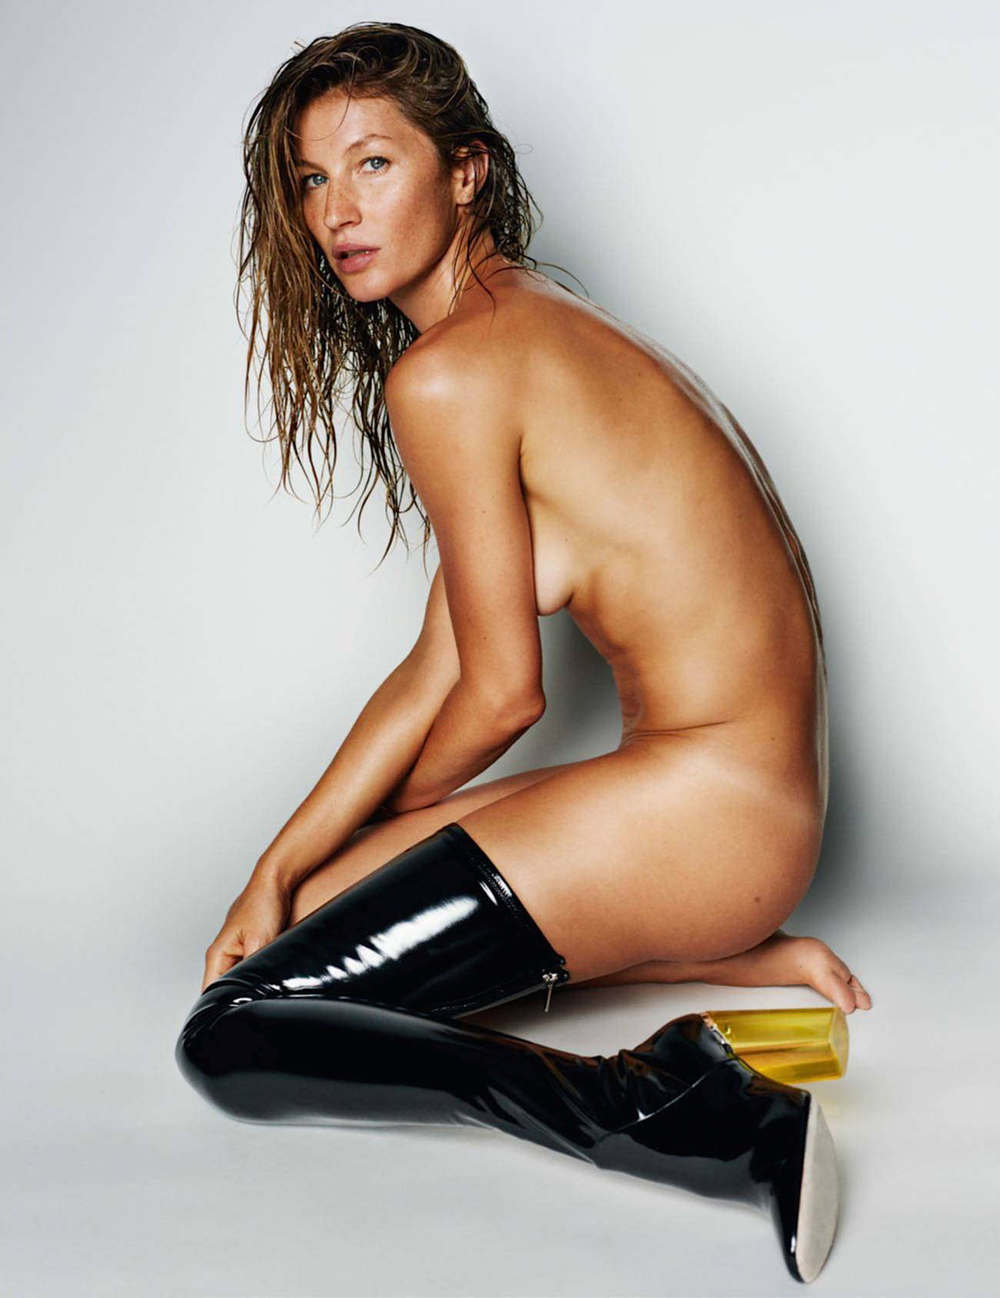 gisele-bc3bcndchen-by-mario-testino-for-vogue-paris-october-2015-9.jpg